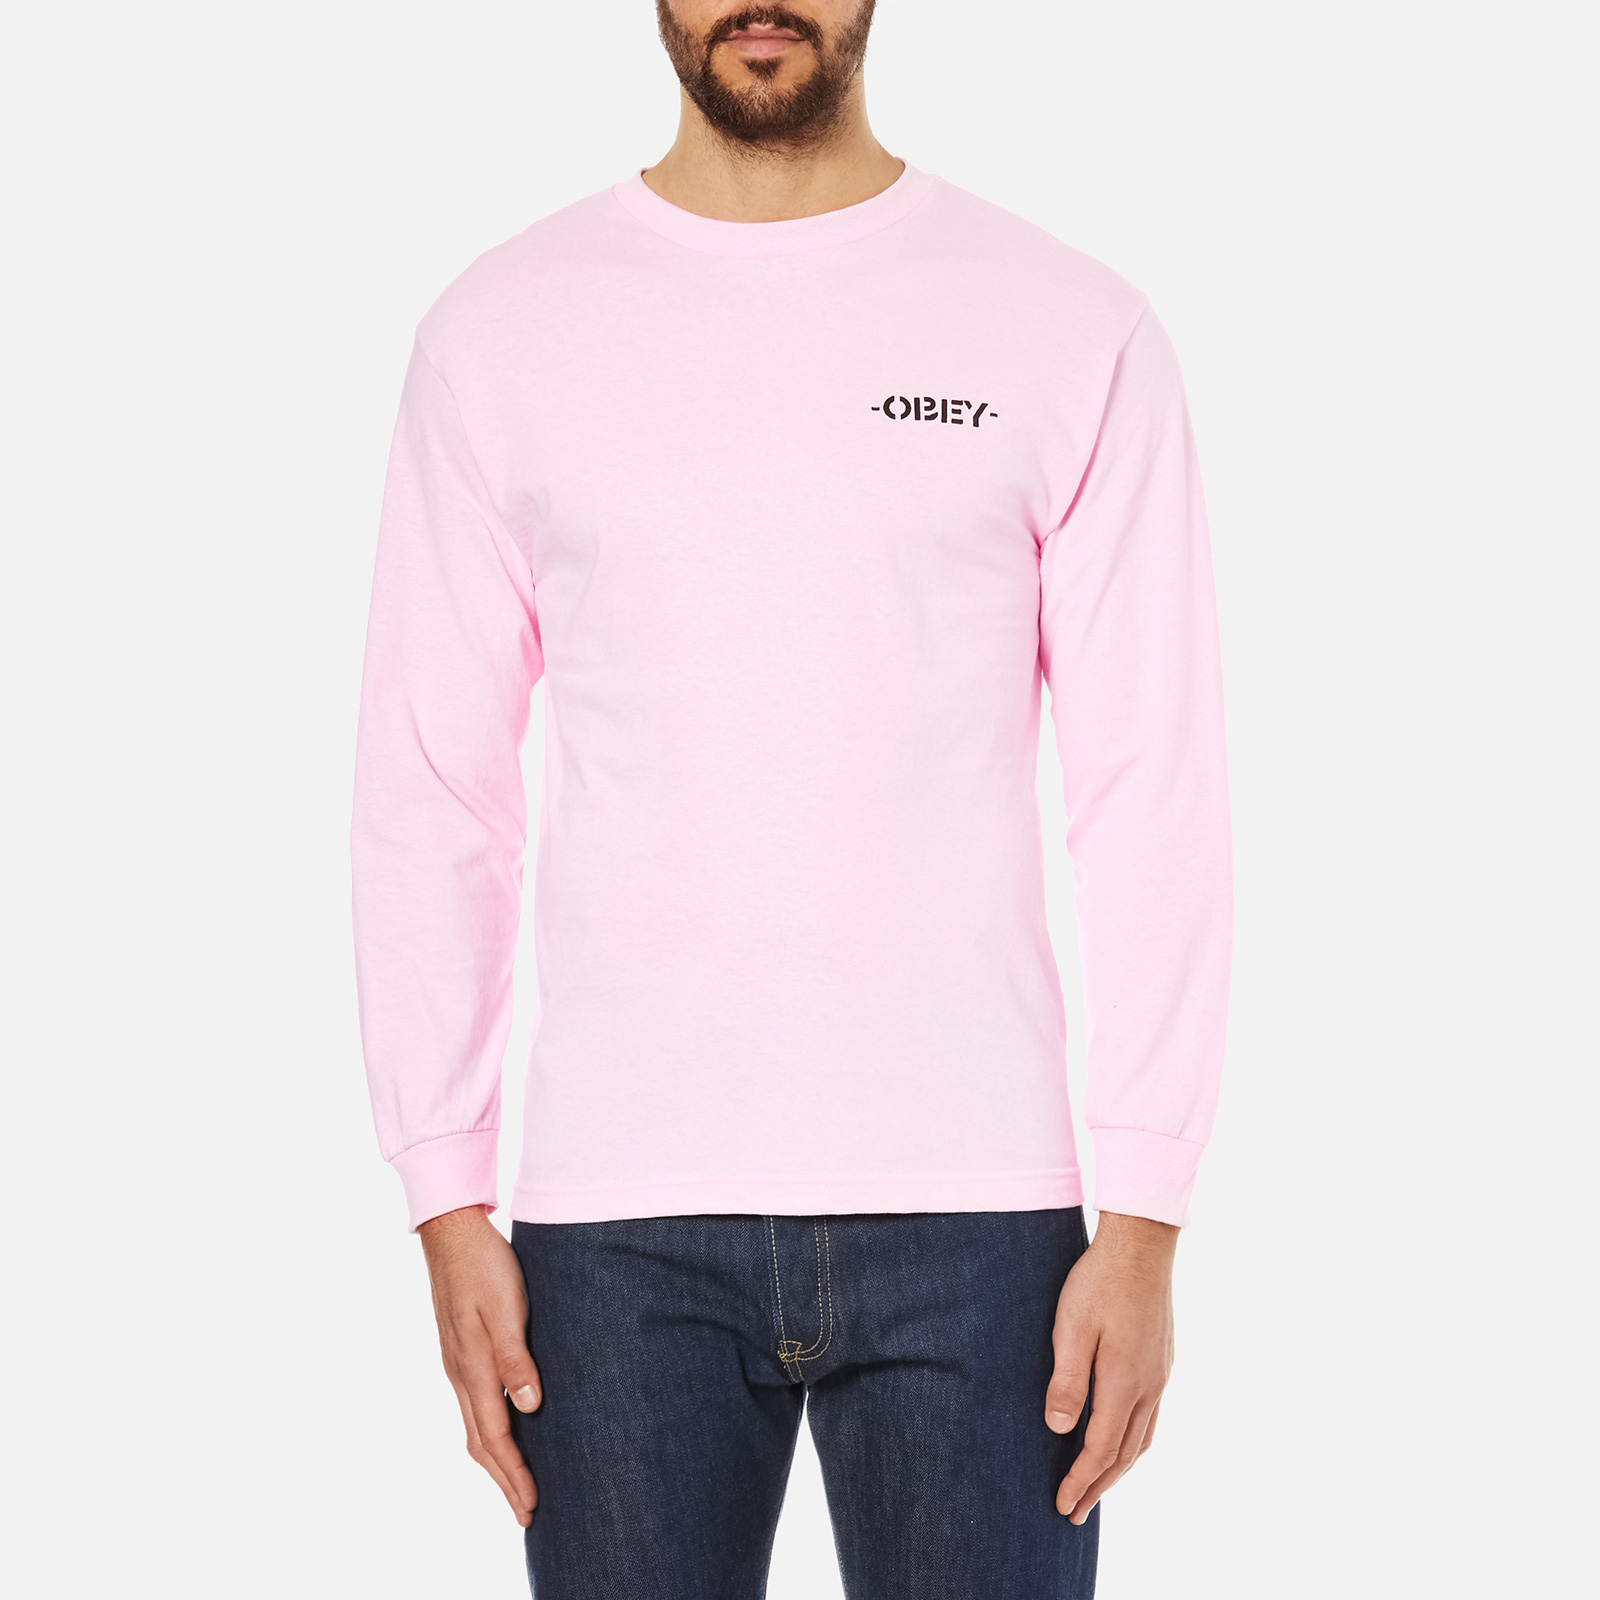 dde72dd6 OBEY Clothing Men's Mother Earth Long Sleeve T-Shirt - Pink Clothing |  TheHut.com